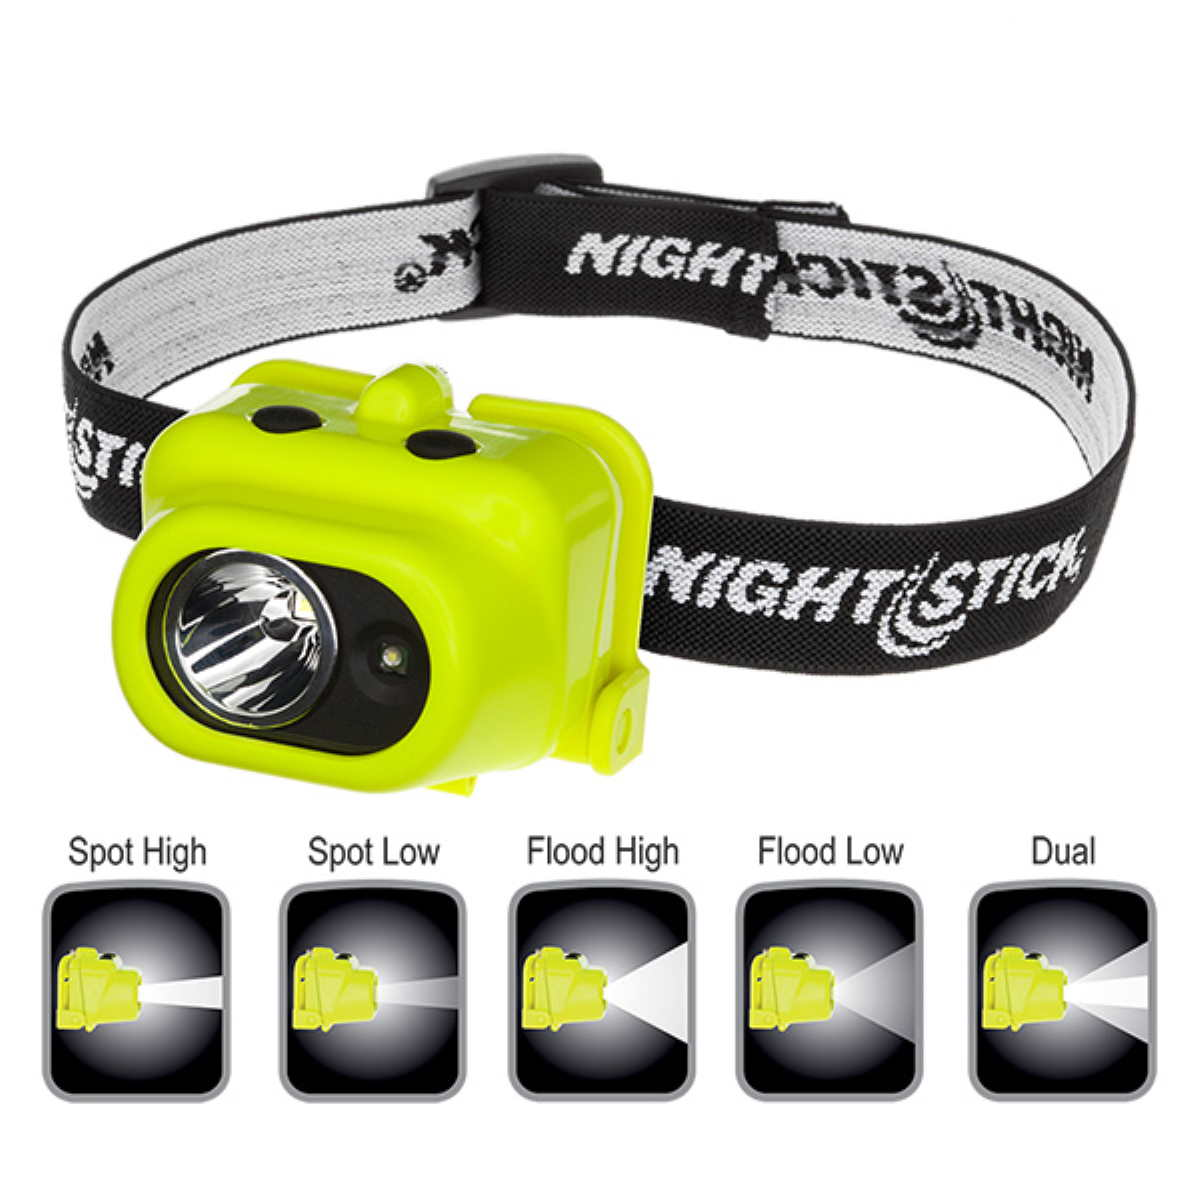 PL0009 Nightstick Intrinsically Safe Multi-Function Dual-Light Headlamp